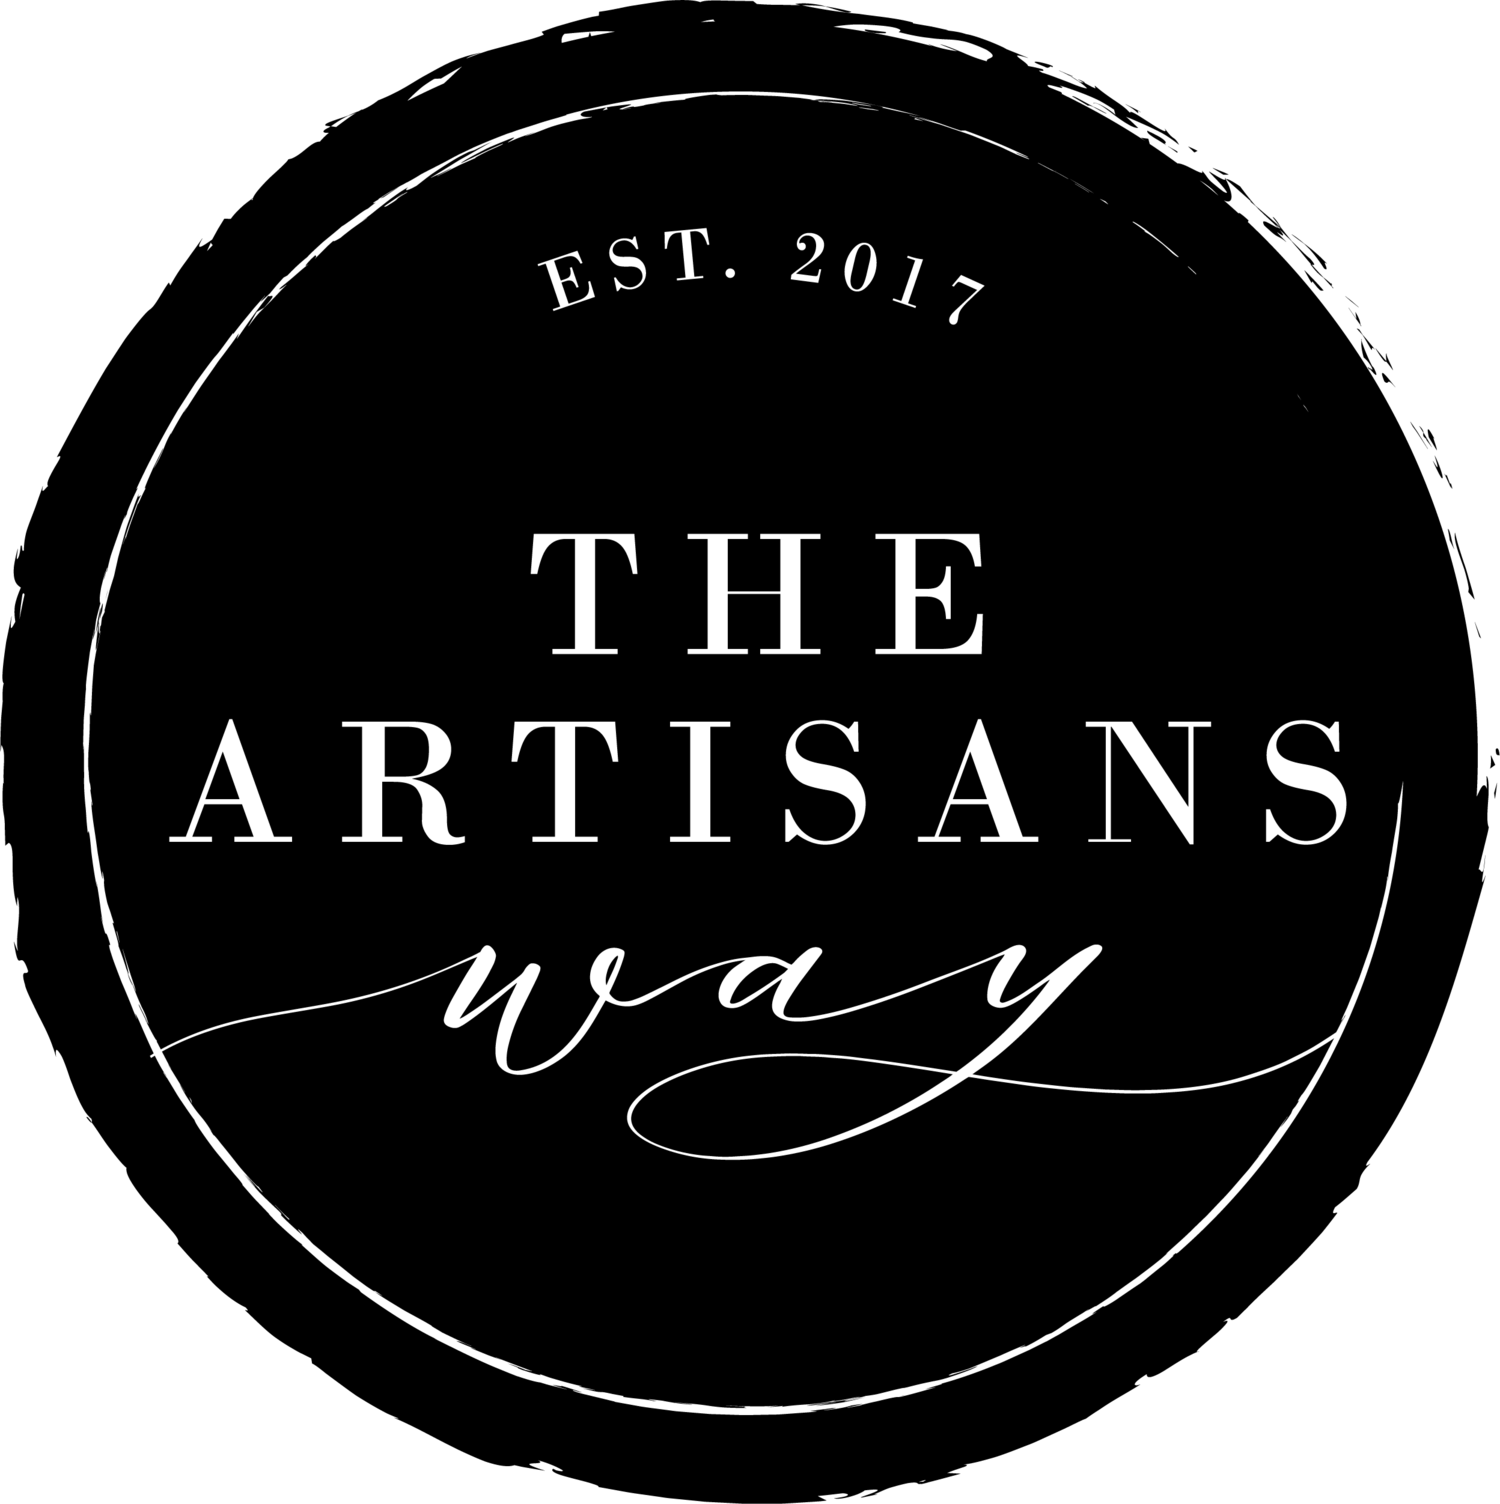 The Artisans Way